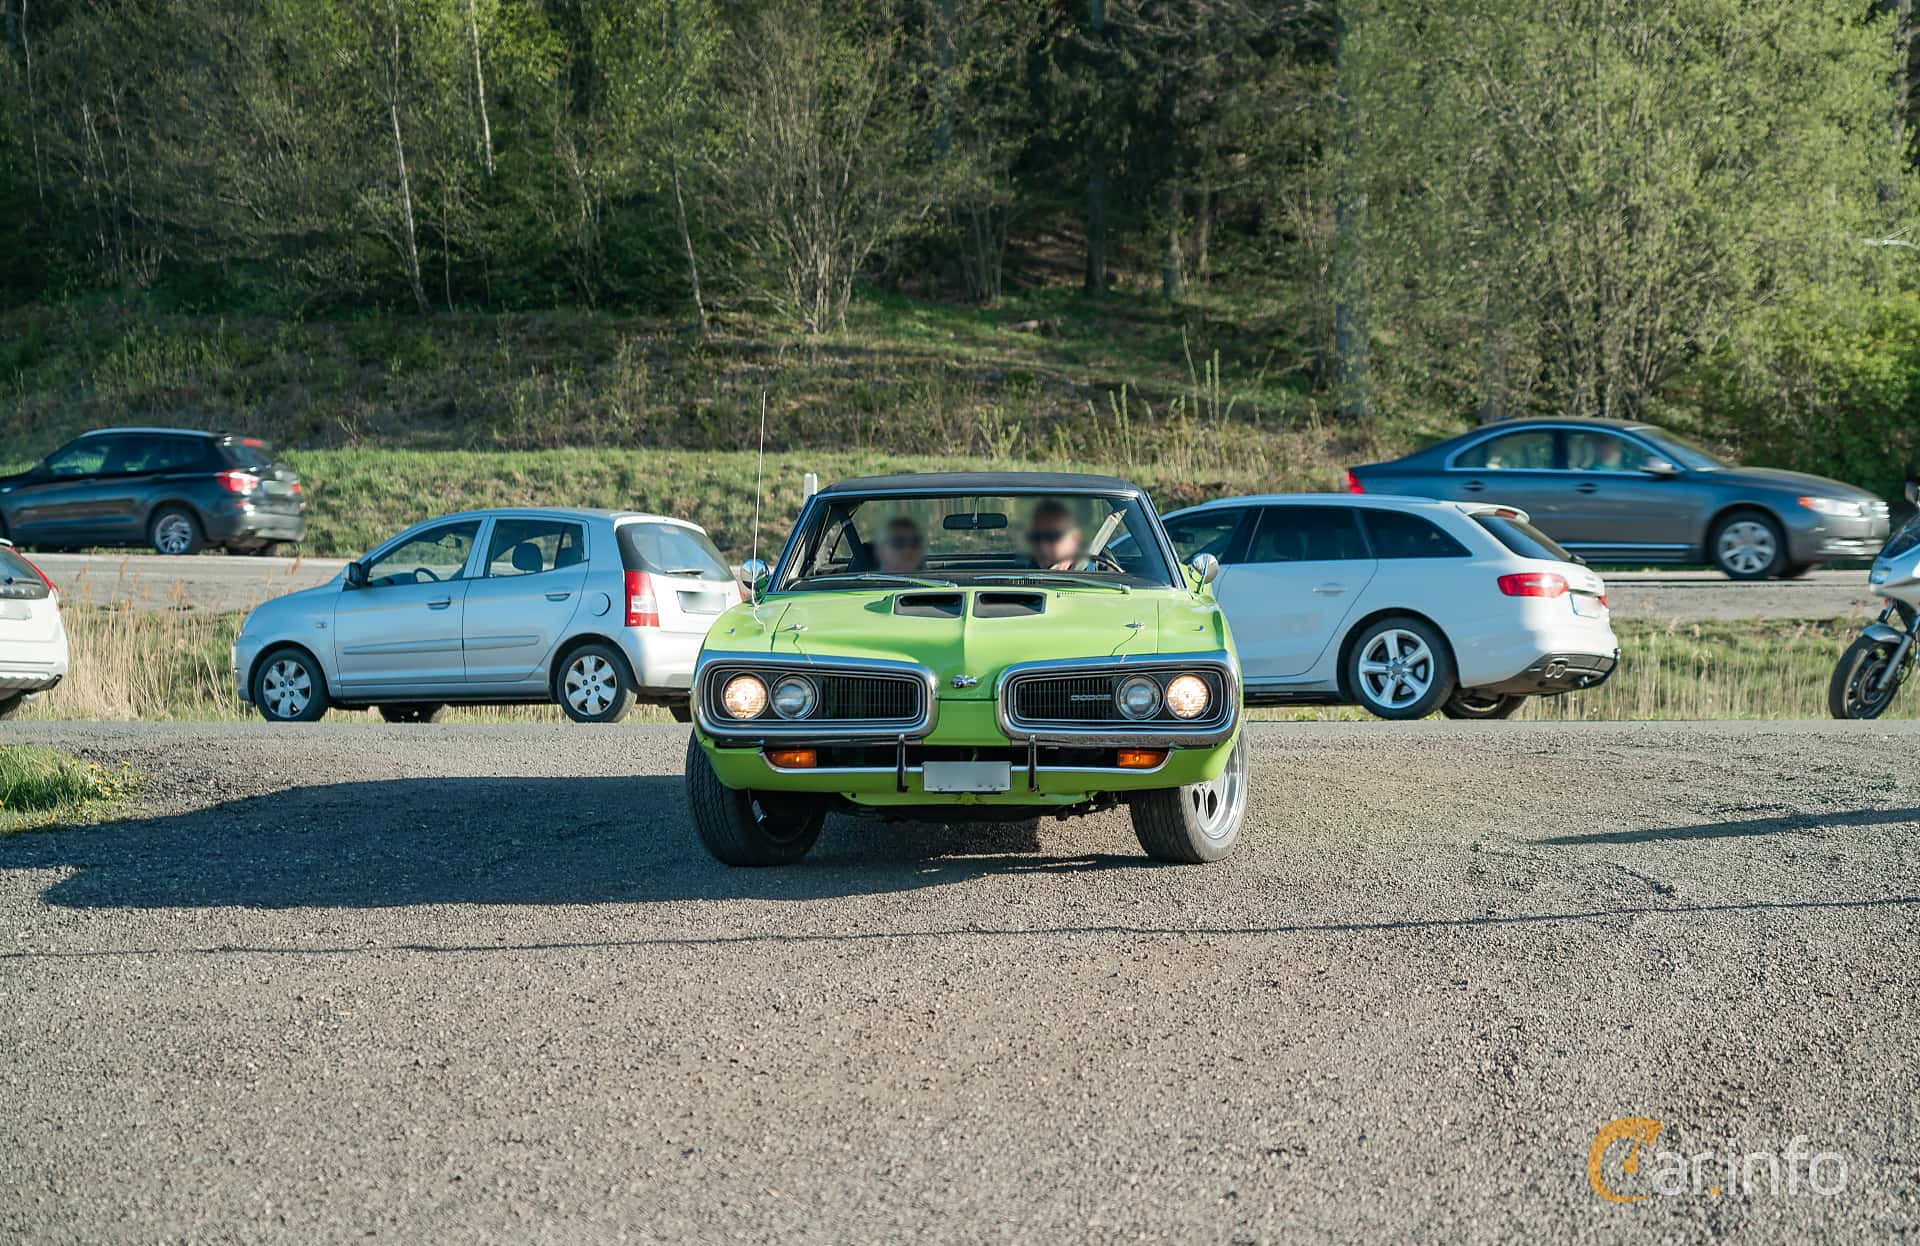 Dodge Coronet Super Bee Hardtop 6.3 V8 TorqueFlite, 340hp, 1970 at Lissma Classic Car 2019 vecka 20